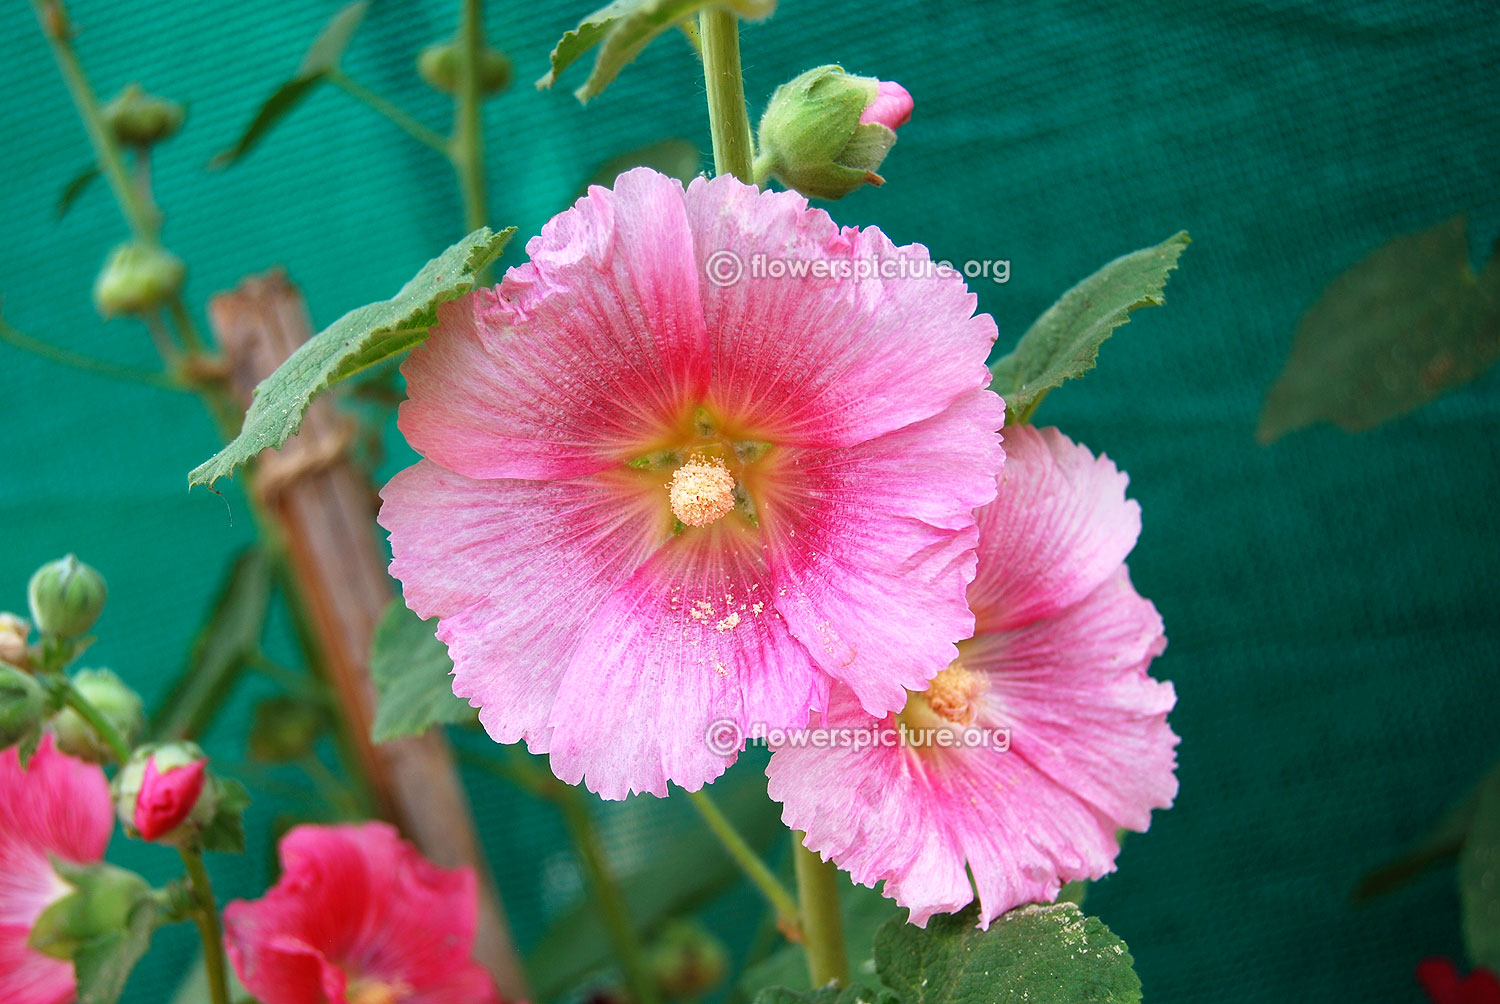 Bangalore lalbagh flower show 2015 pictures gallery 7 for Alcea rosea